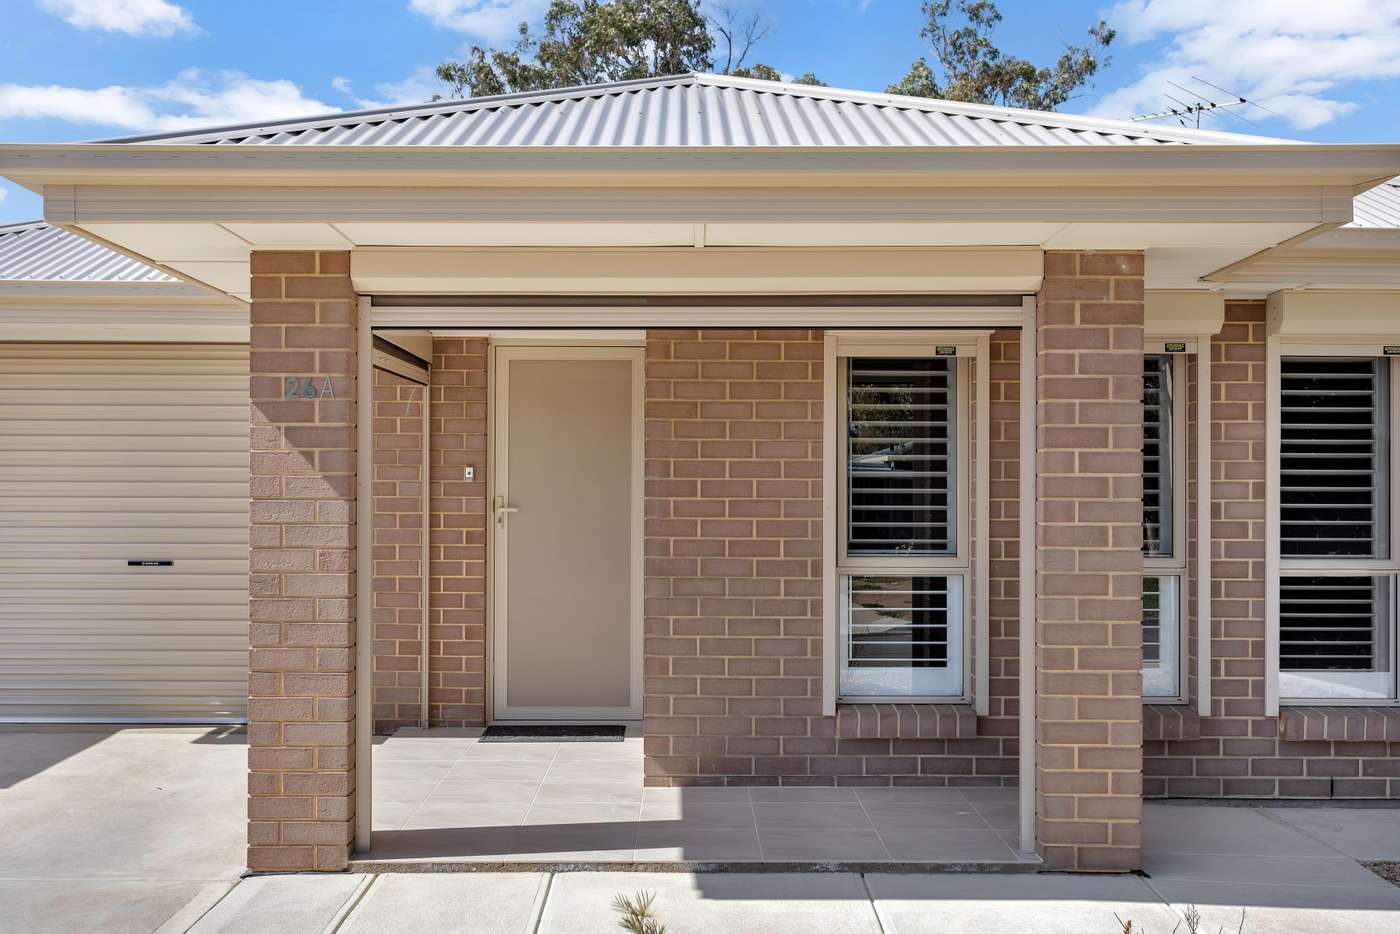 Fifth view of Homely house listing, 26a Freeman Avenue, Morphett Vale SA 5162